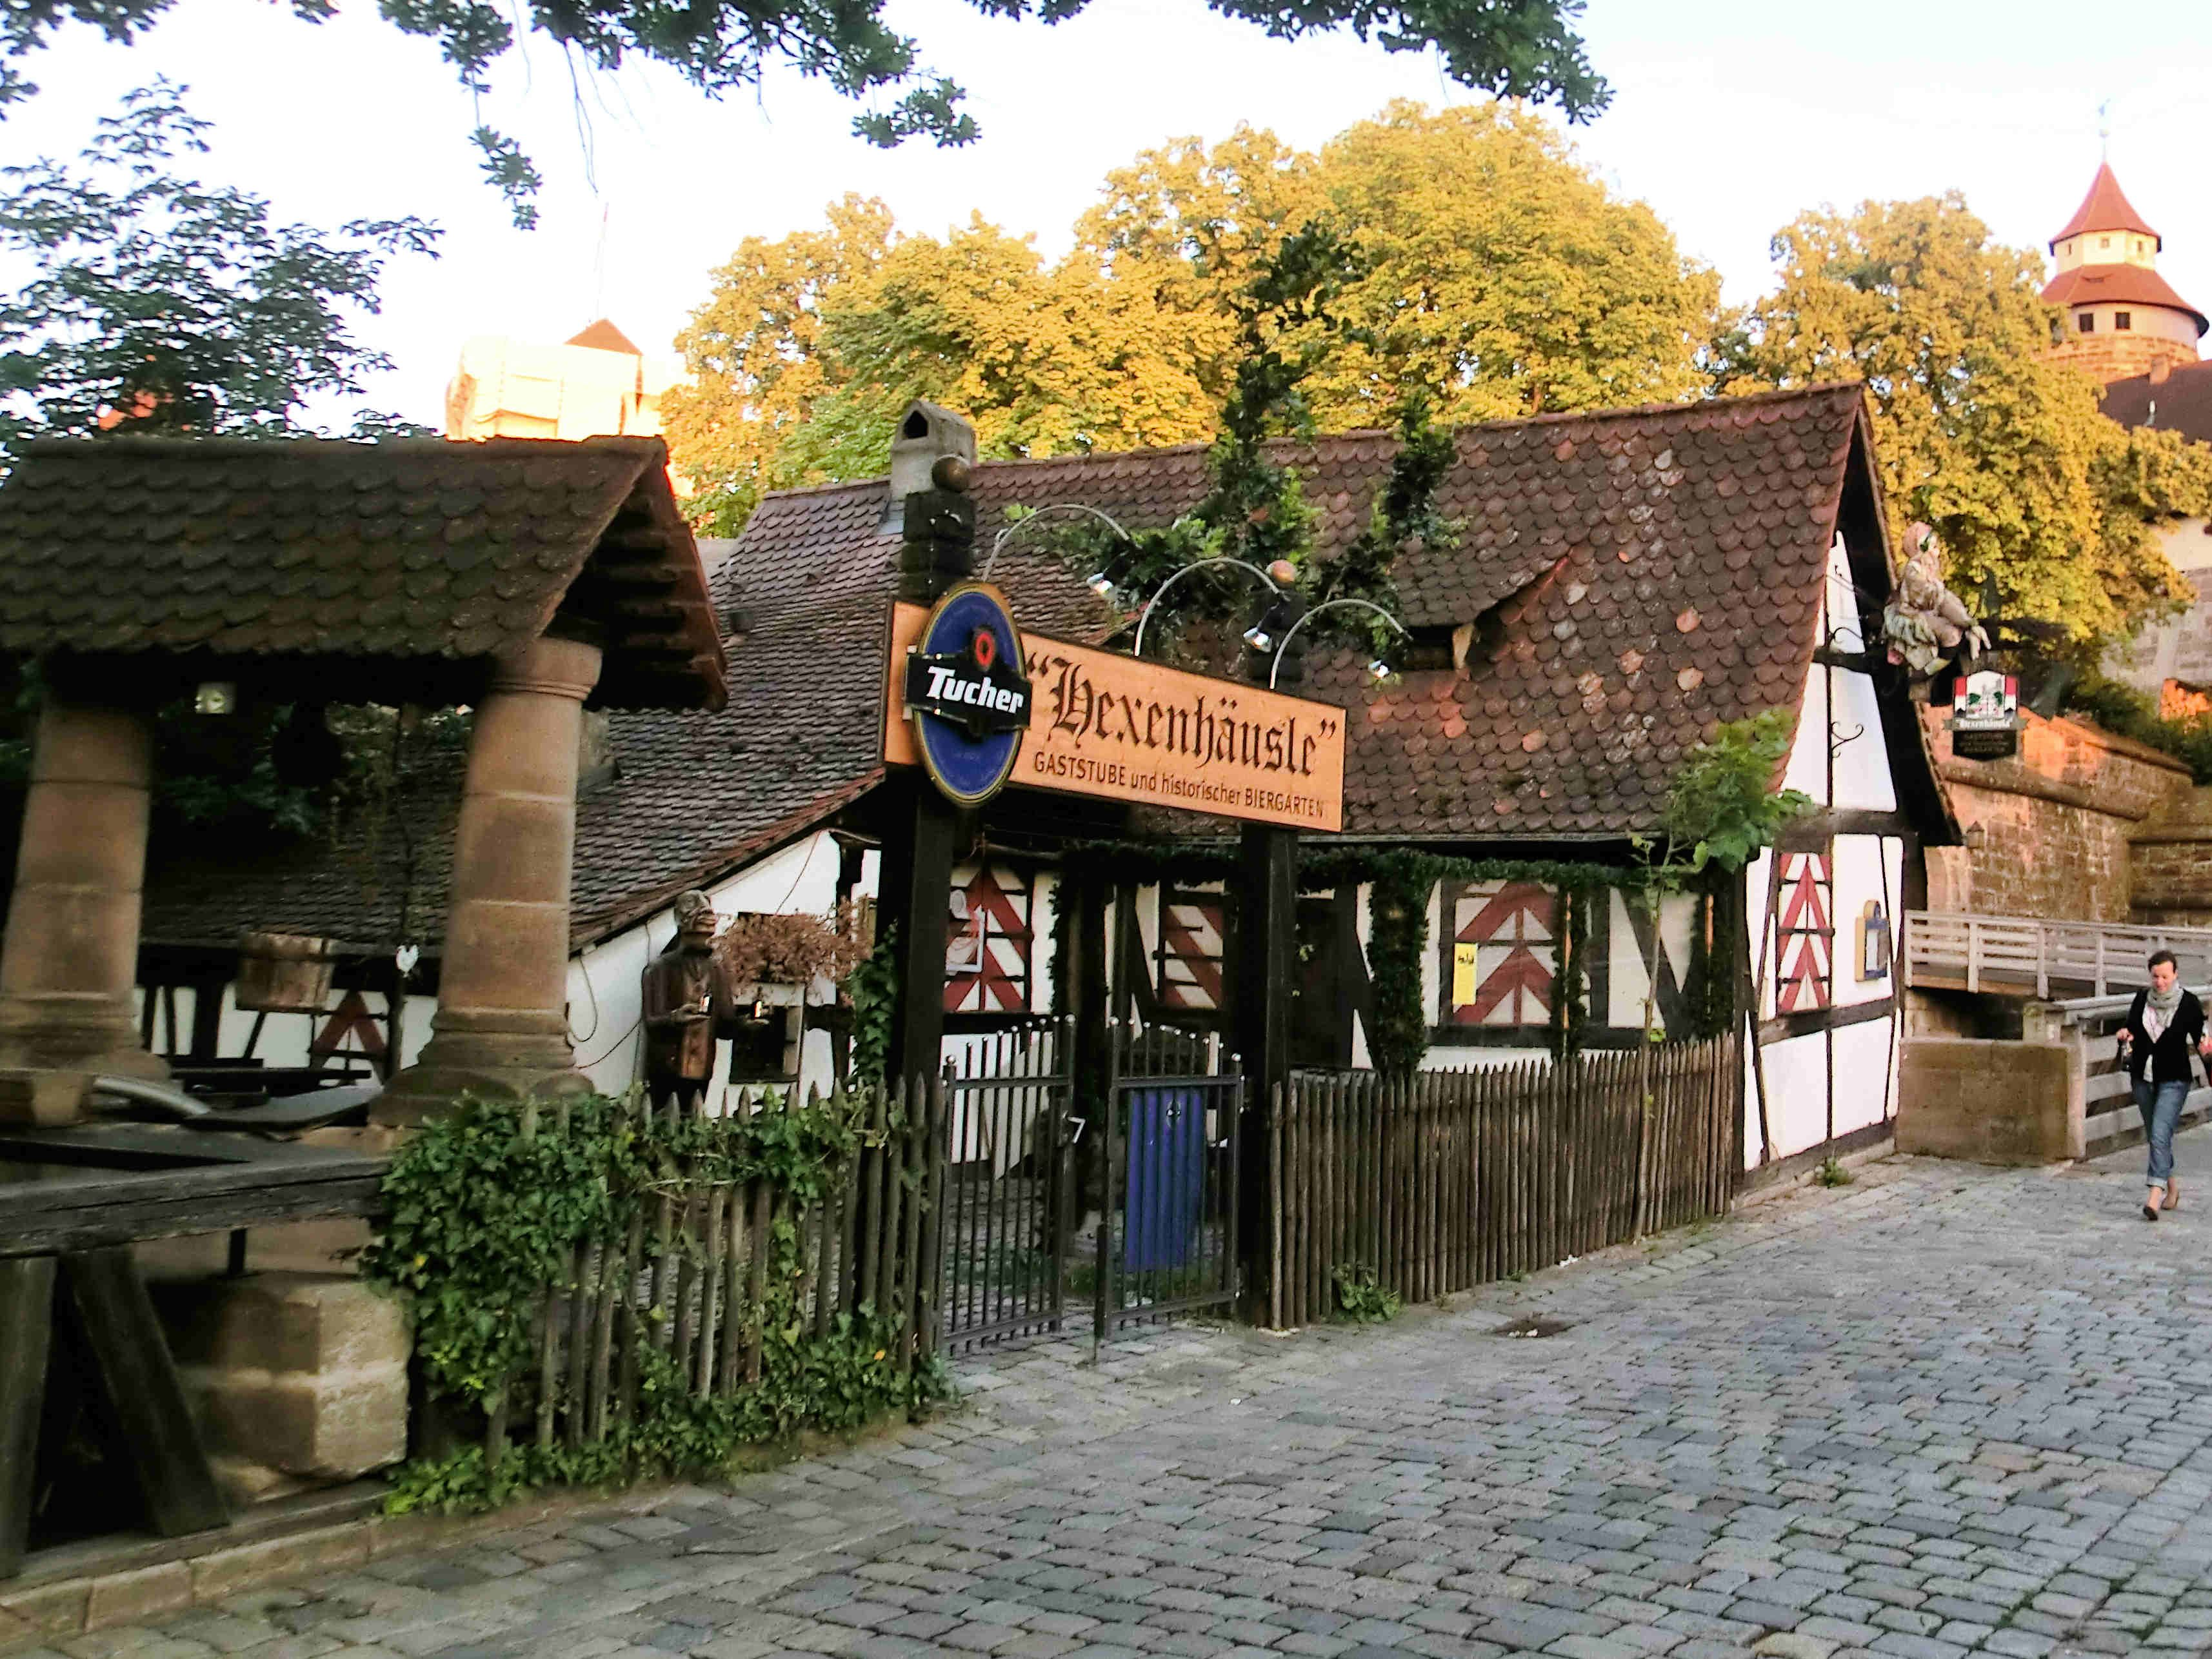 Kaminbauer Nürnberg the historic hexenhäusle witches house garden and